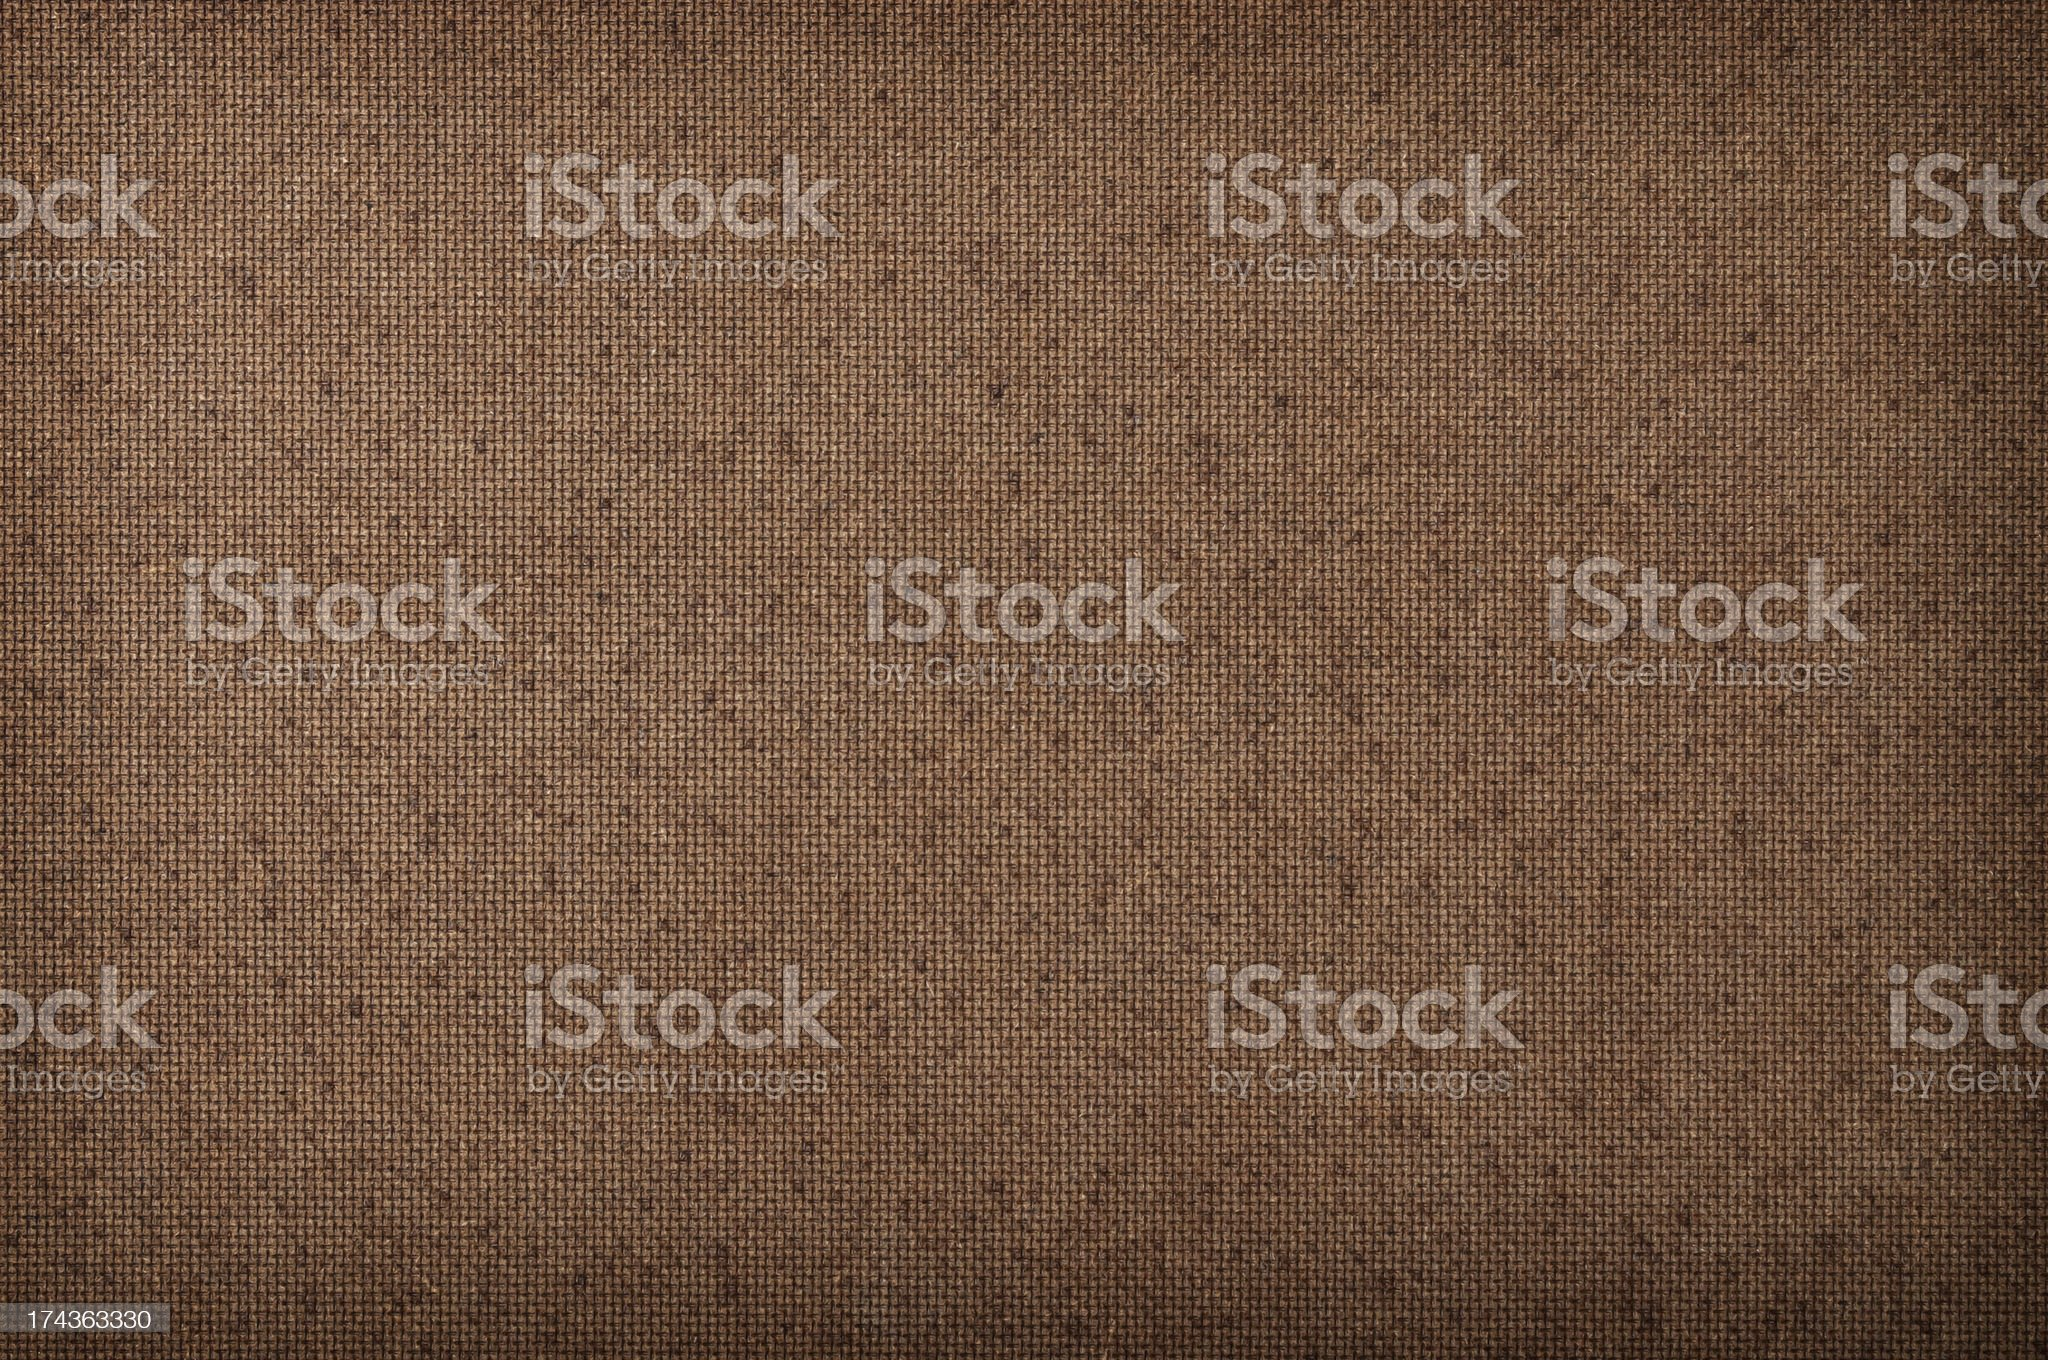 Fiberboard Background royalty-free stock photo